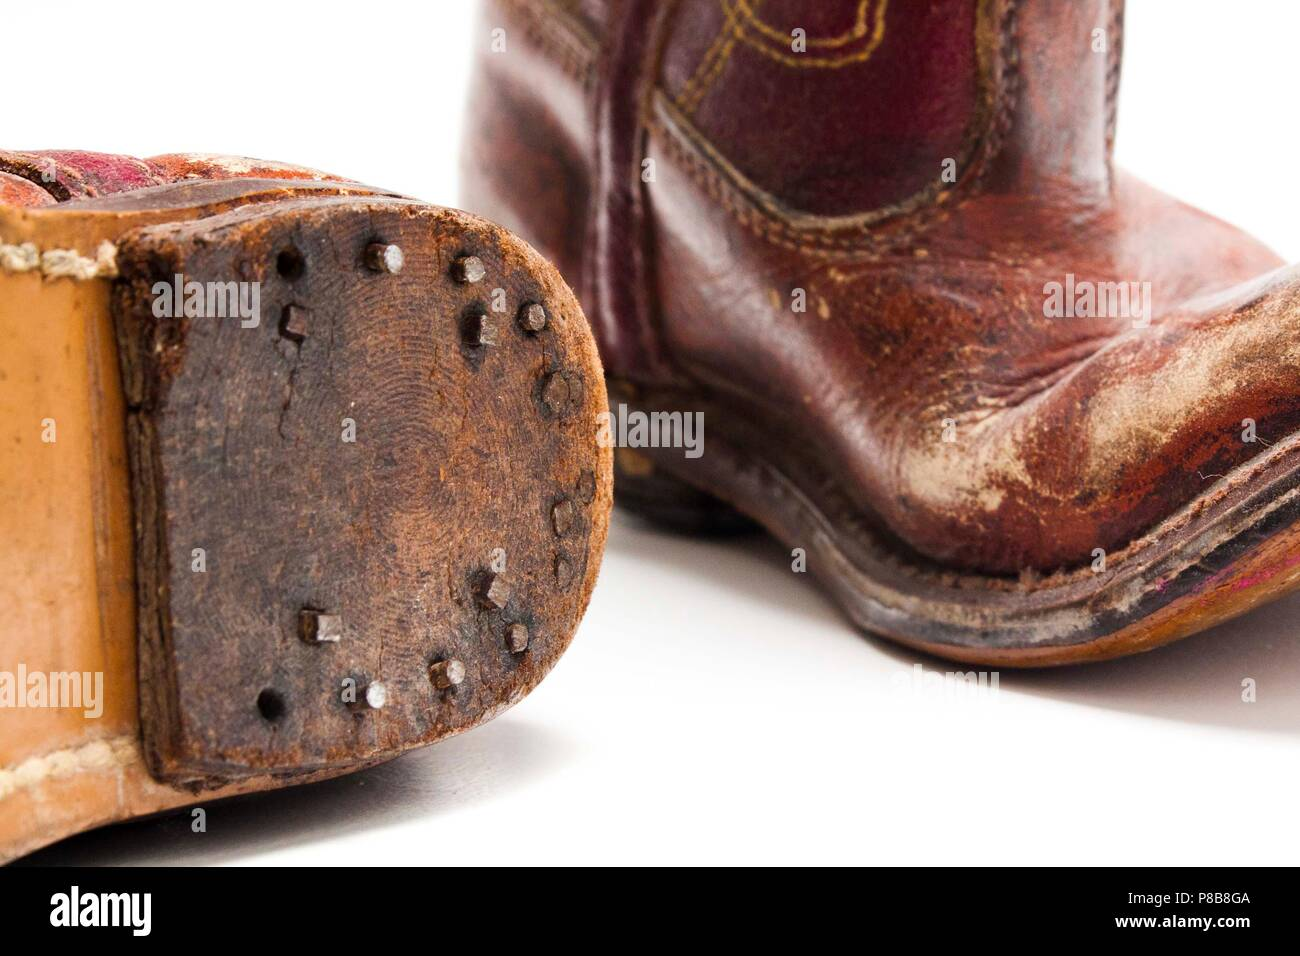 c3b5be3f2f5 Worn Out Cowboy Boots Stock Photos & Worn Out Cowboy Boots Stock ...